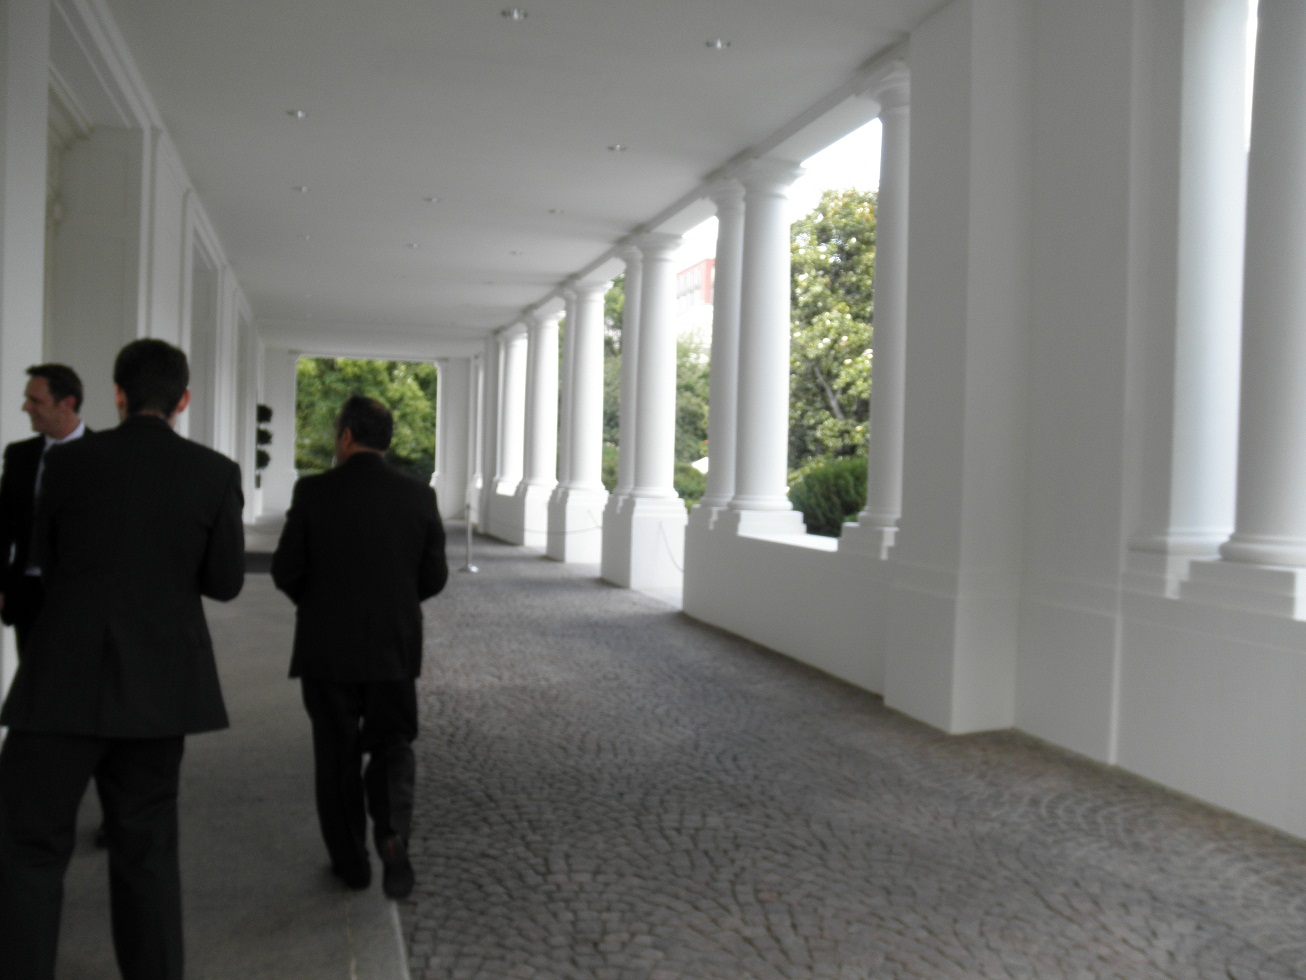 Photo: Outside the East Wing.